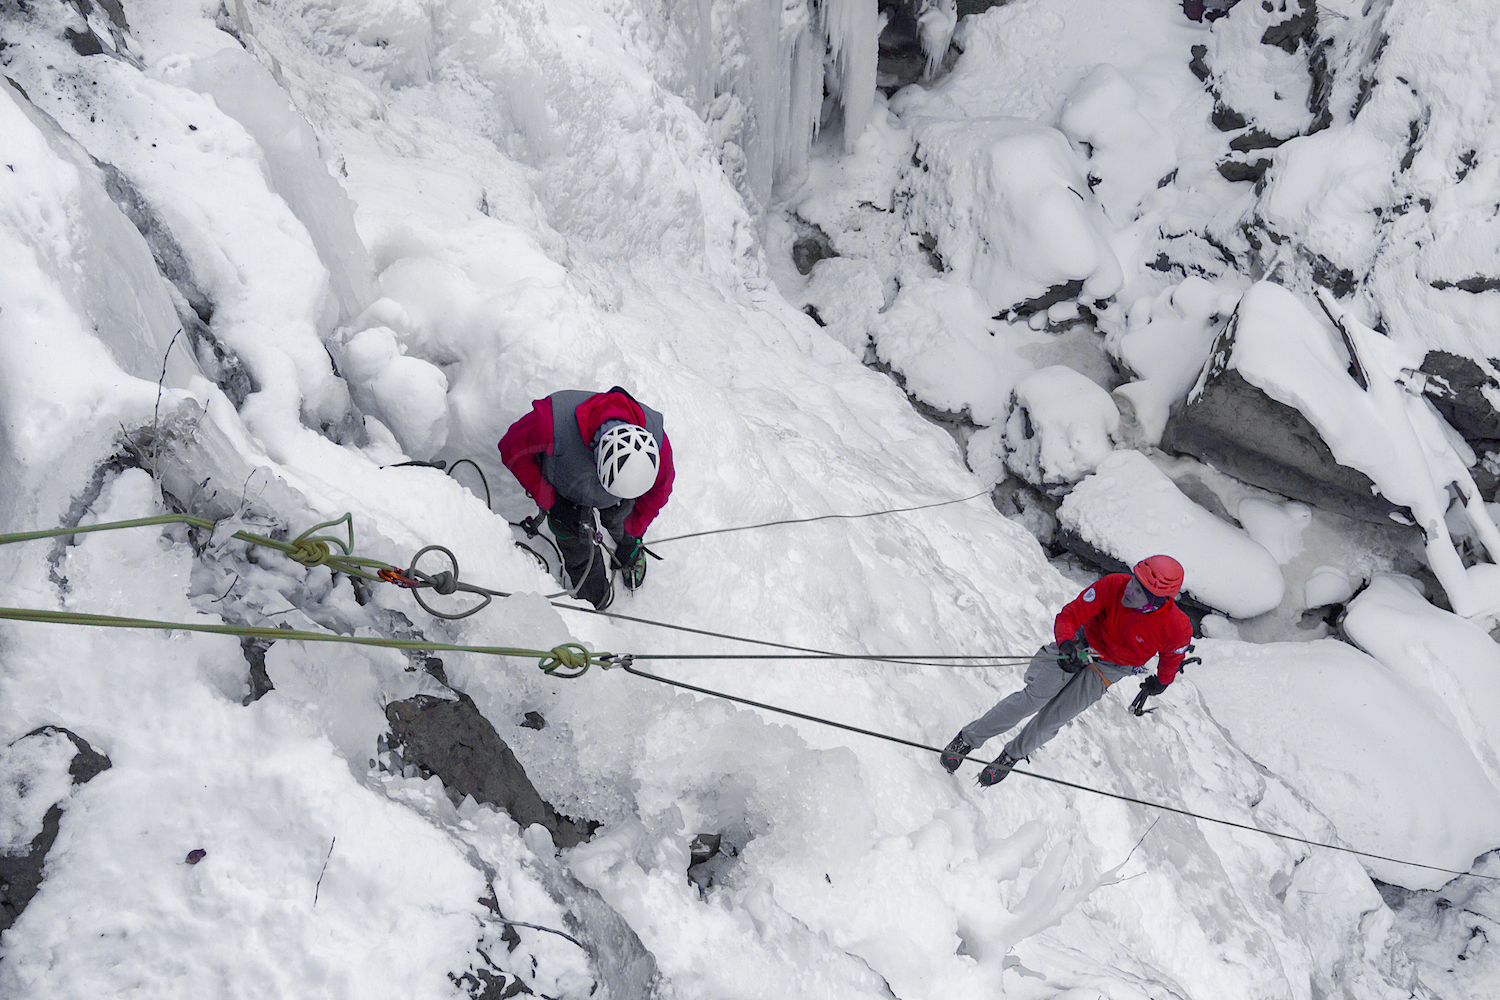 Ouray Ice Park, Image # 4502